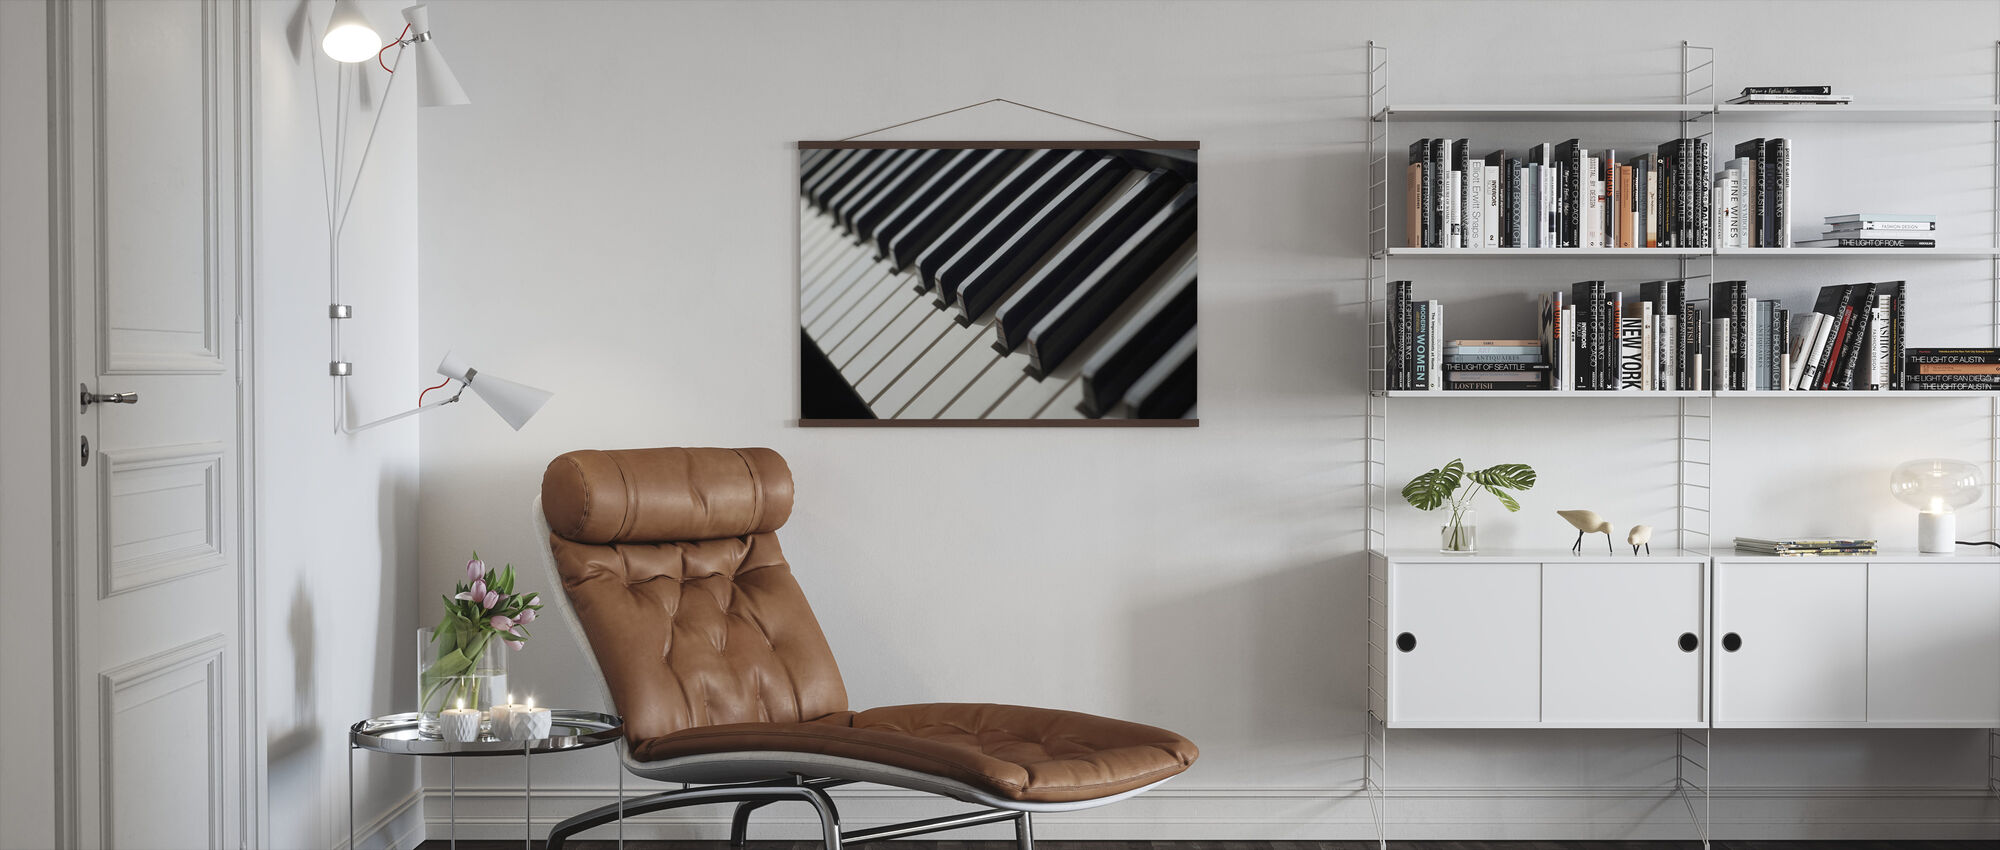 Piano Keyboard - Poster - Living Room